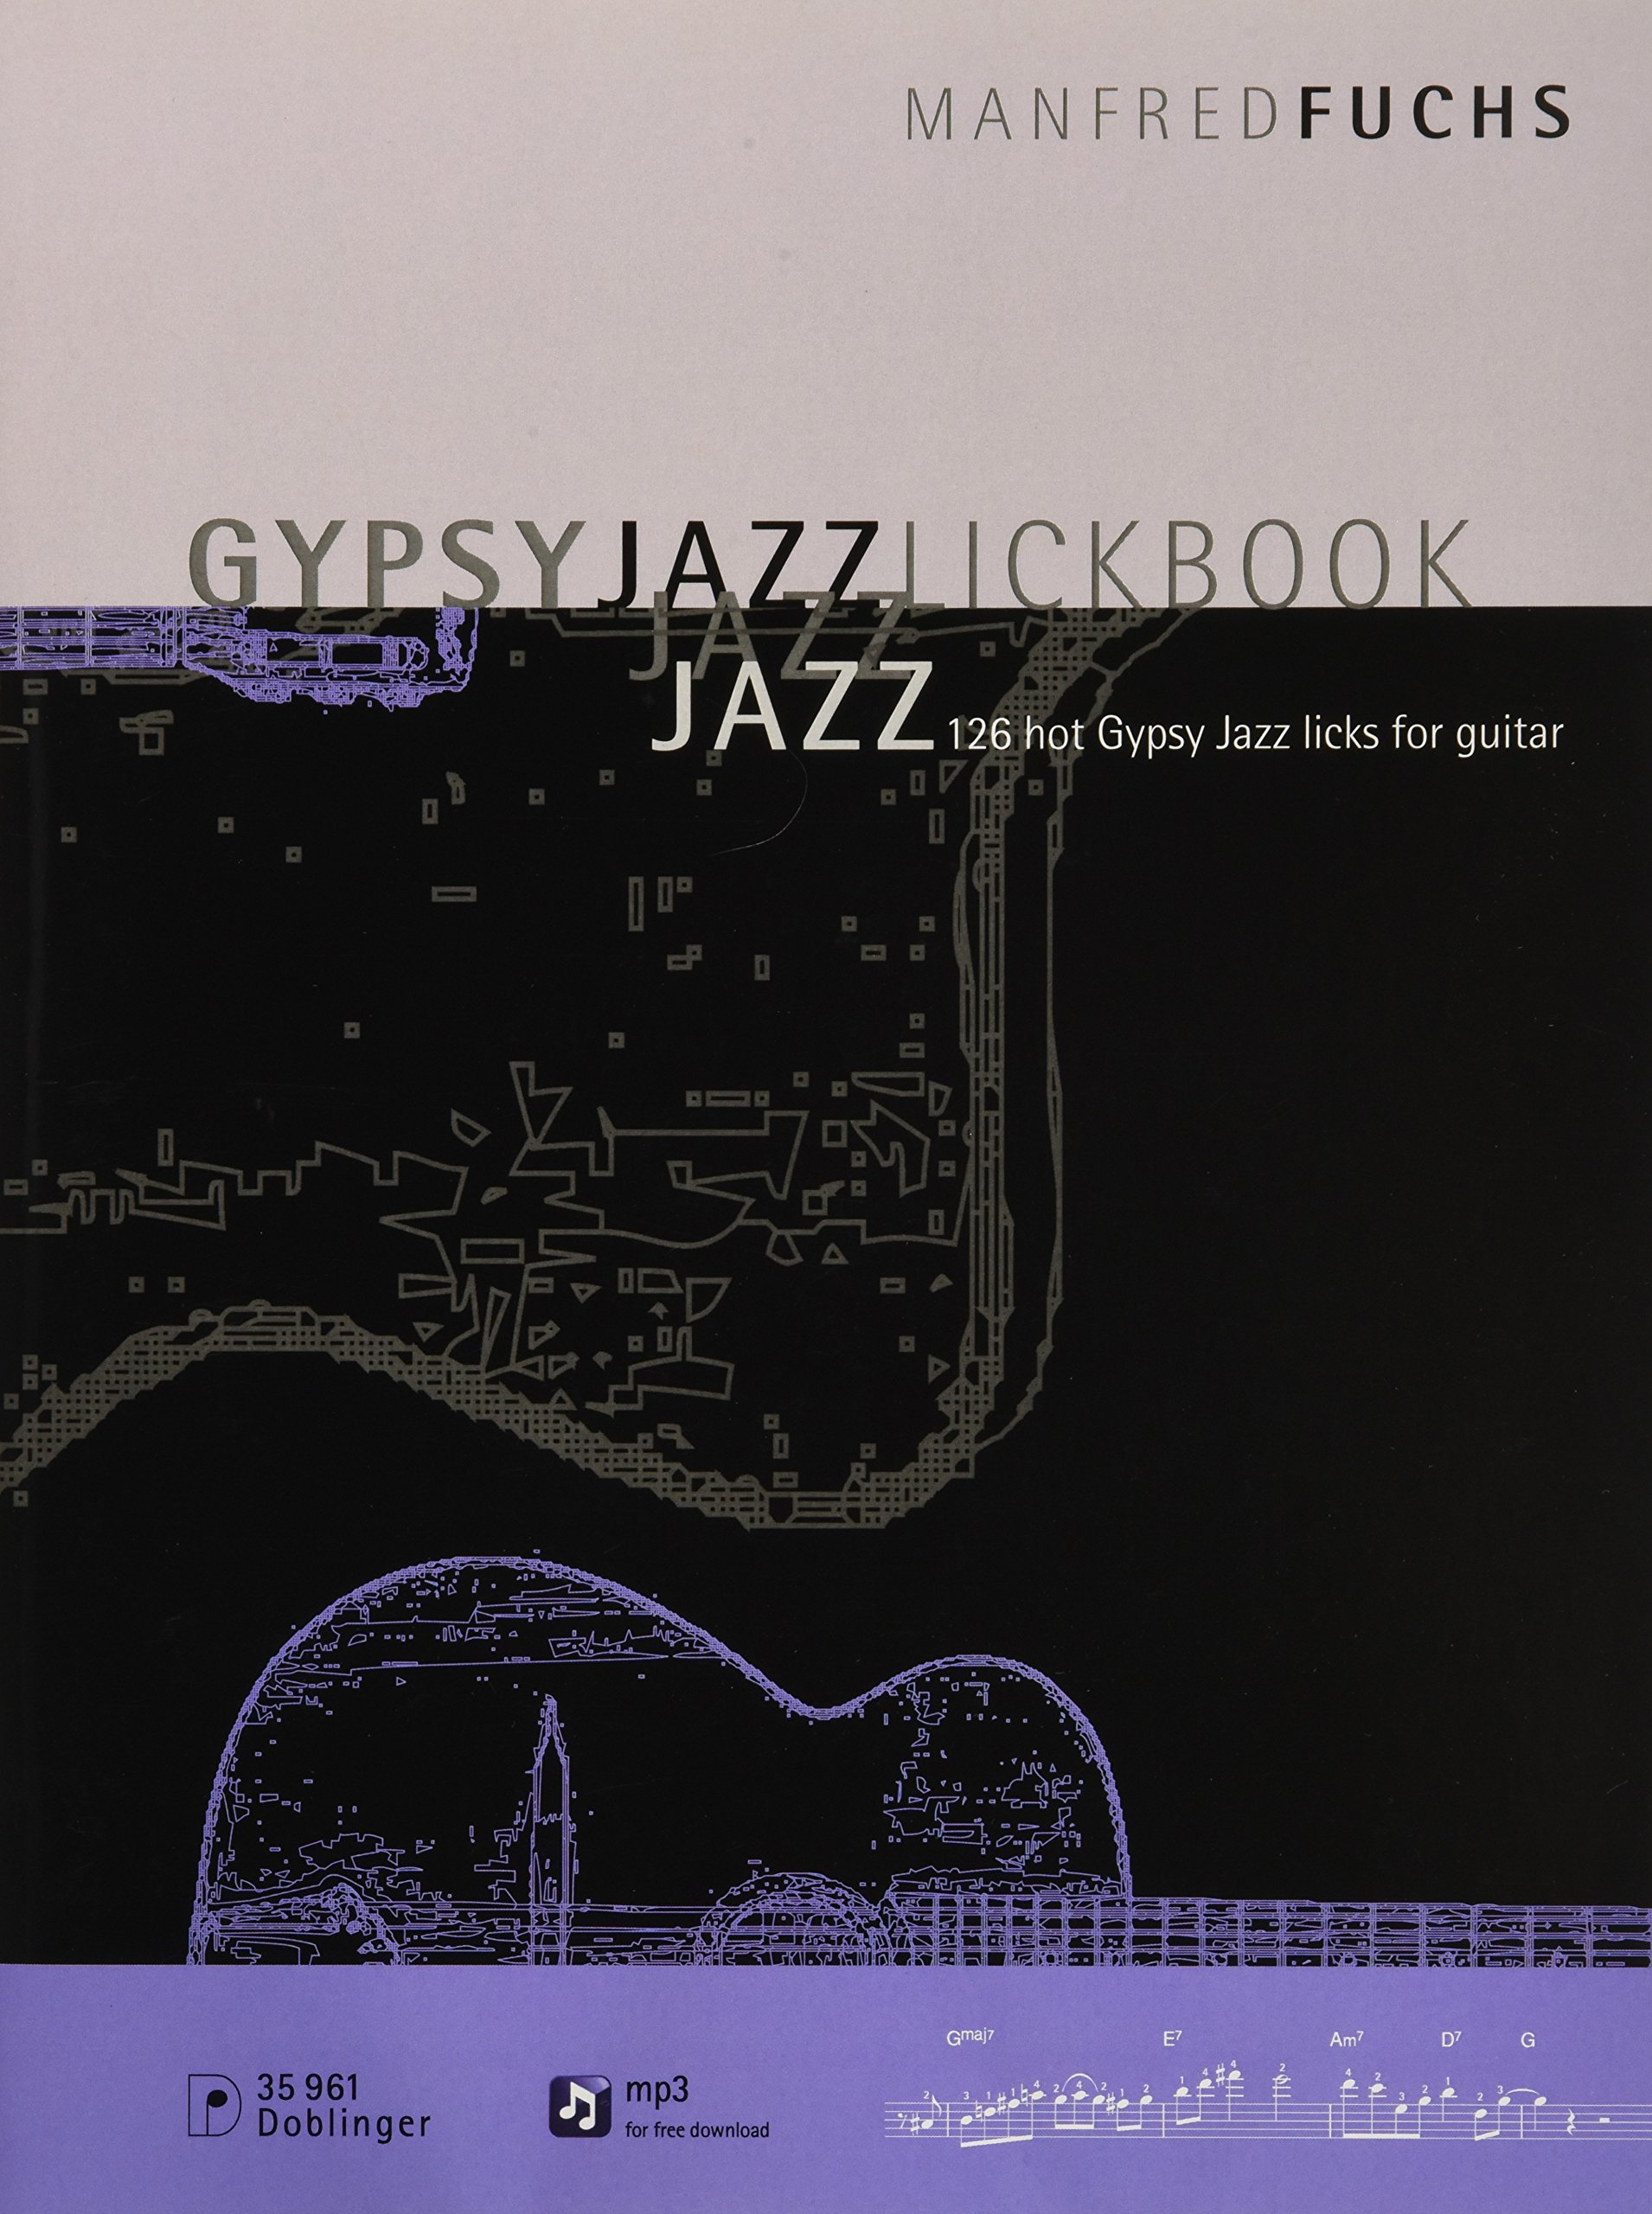 Manfred Fuchs - Gypsy Jazz Lick Book